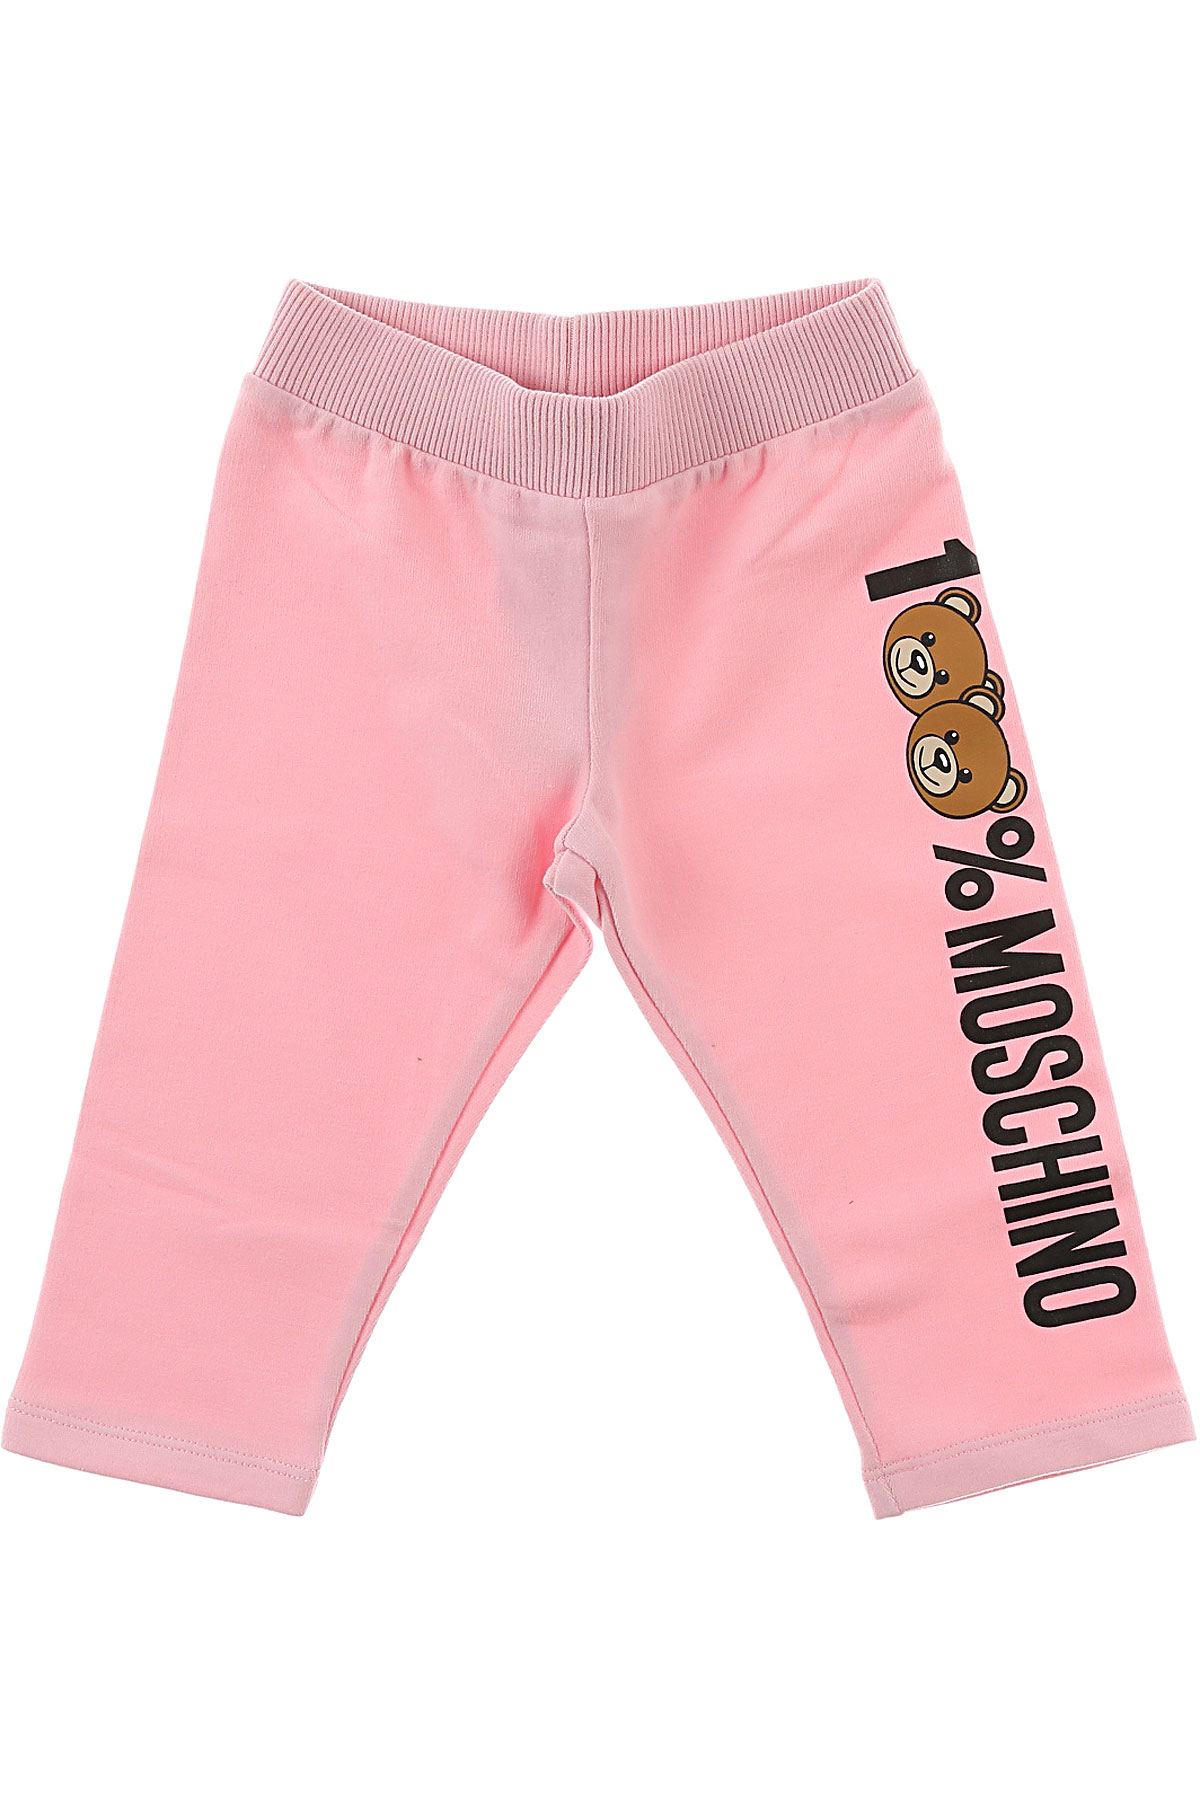 Image of Moschino Baby Sweatpants for Girls, Pink, Cotton, 2017, 24M 2Y 3Y